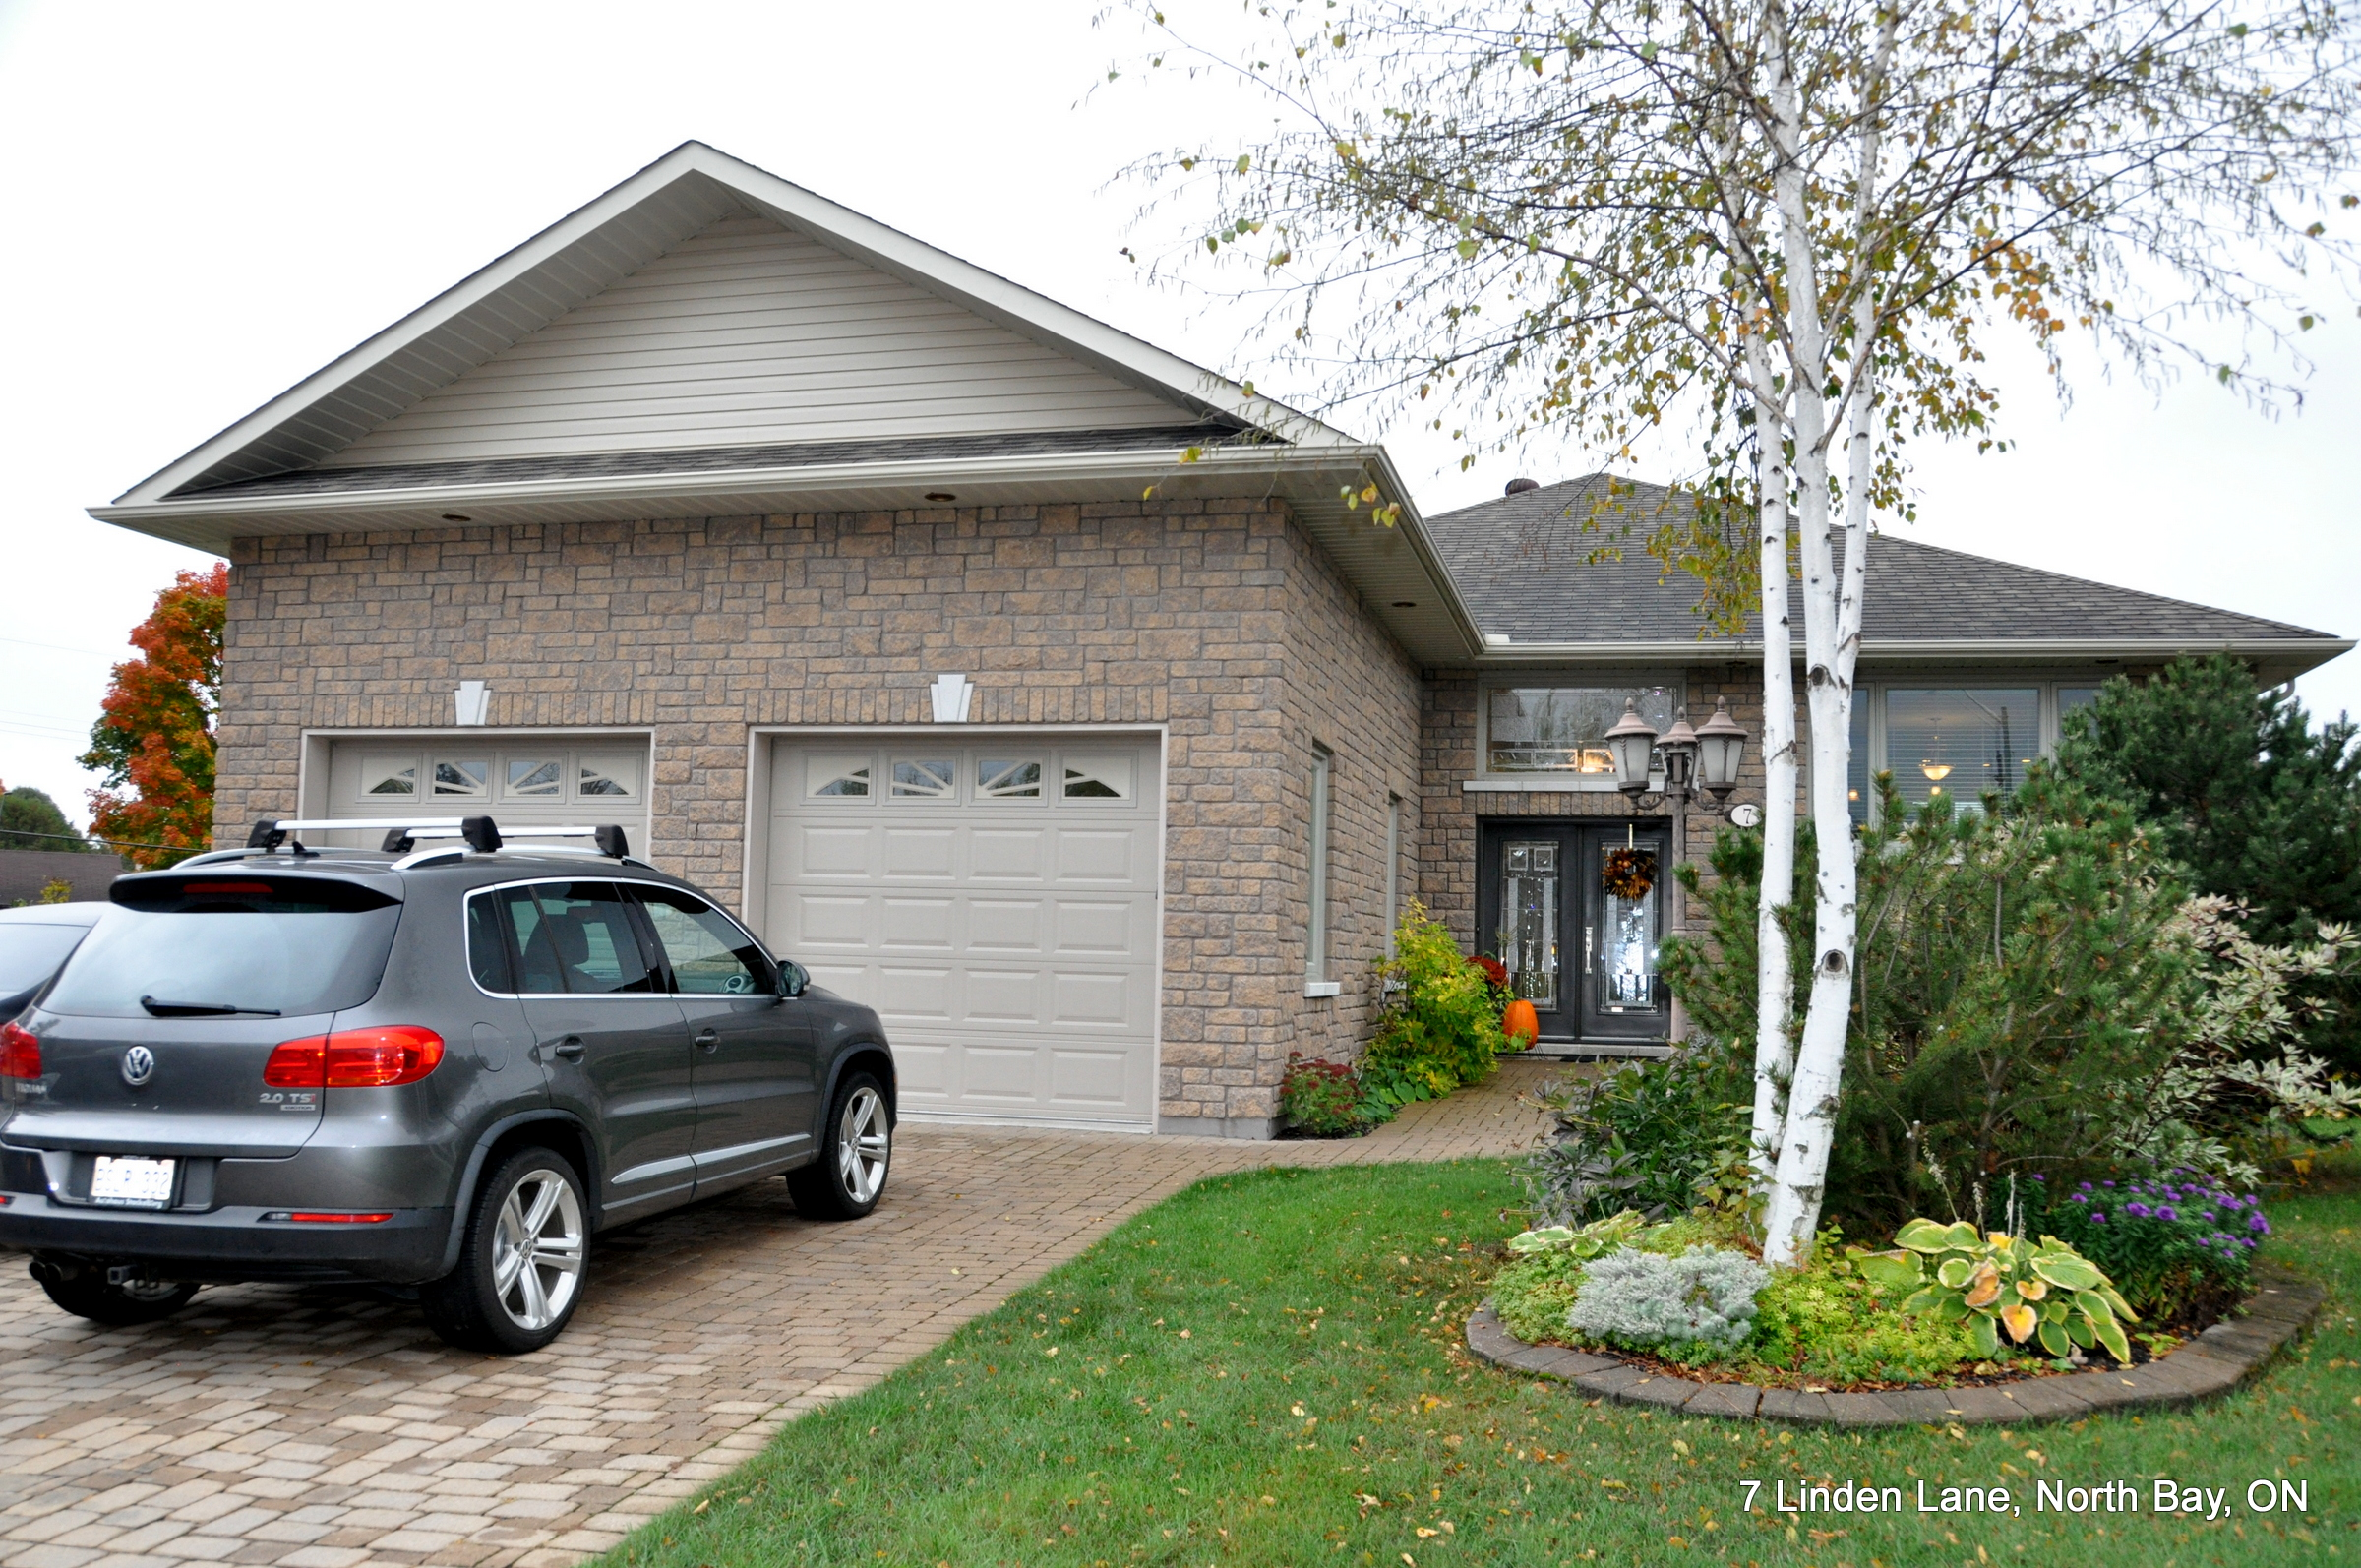 7 Linden Lane, North Bay, ON